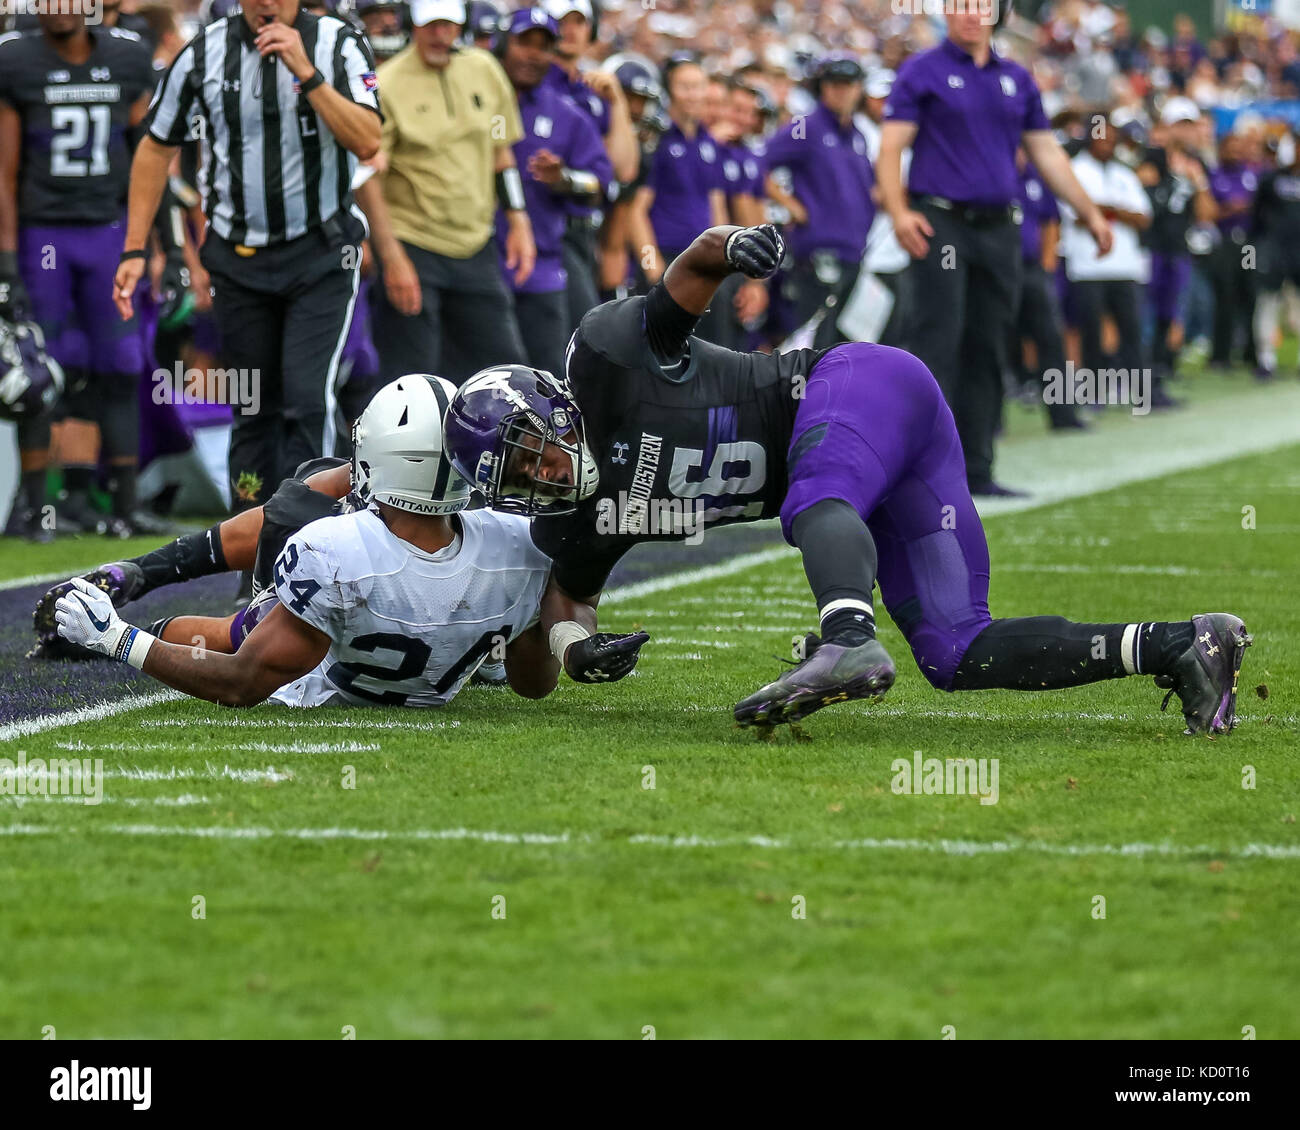 Saturday October 7th - Northwestern Wildcats safety Godwin Igwebuike (16) was flagged for targeting on this play Stock Photo